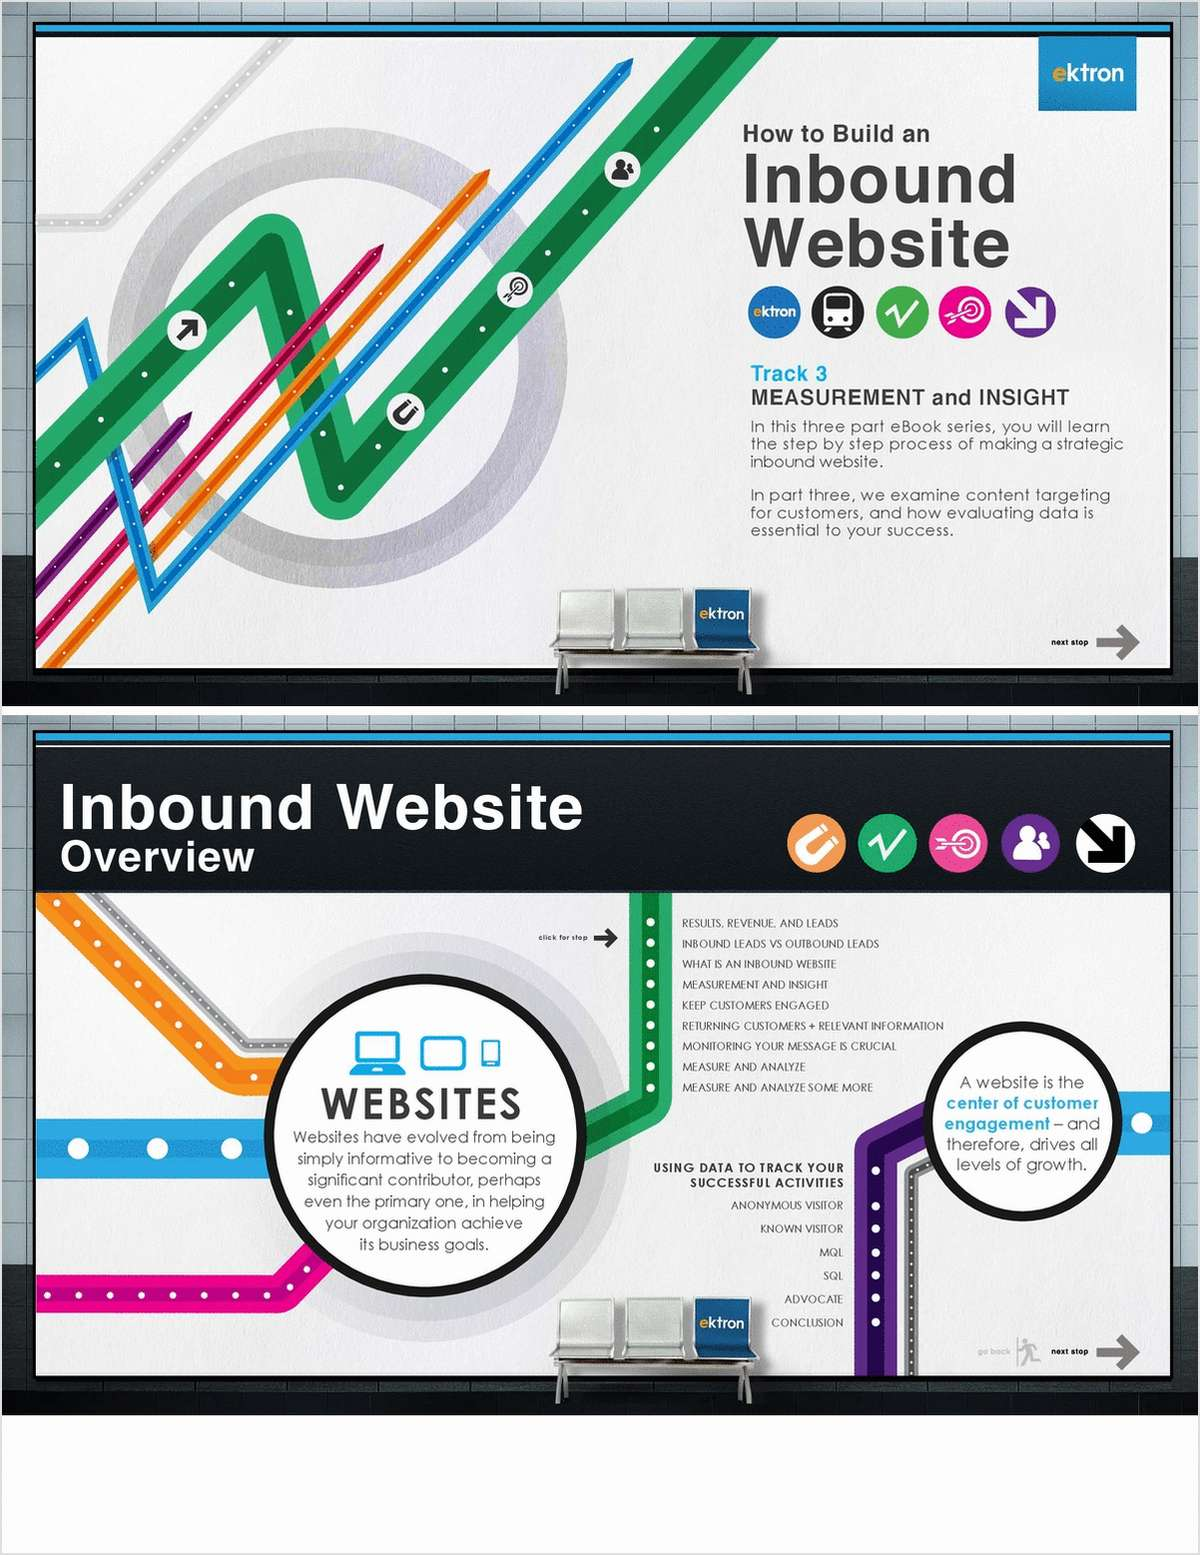 How to Build an Inbound Website: Measurement & Insight